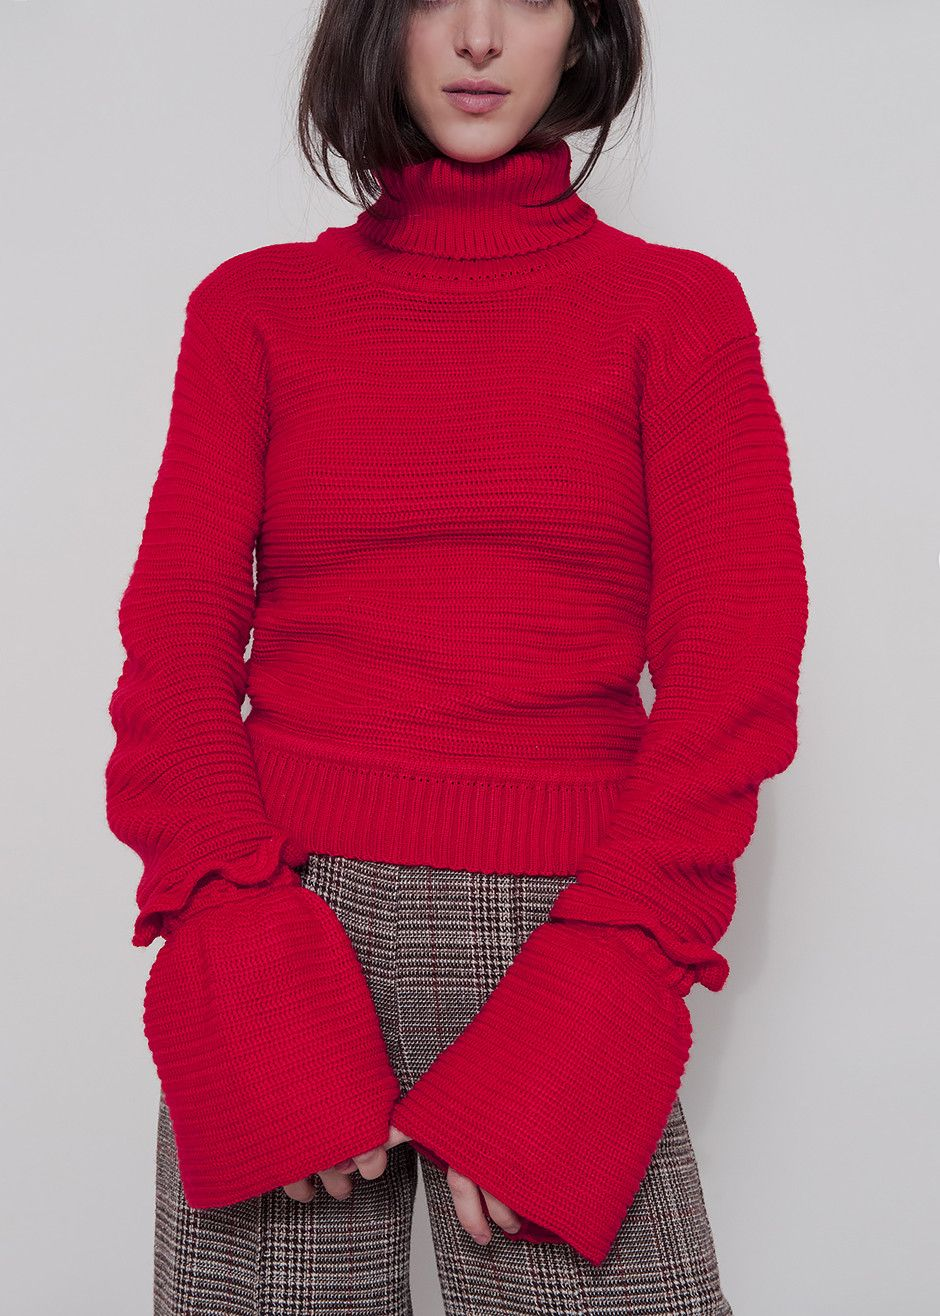 Chakshyn Red Bell Sleeve Sweater – The Frankie Shop | Ss18 ...